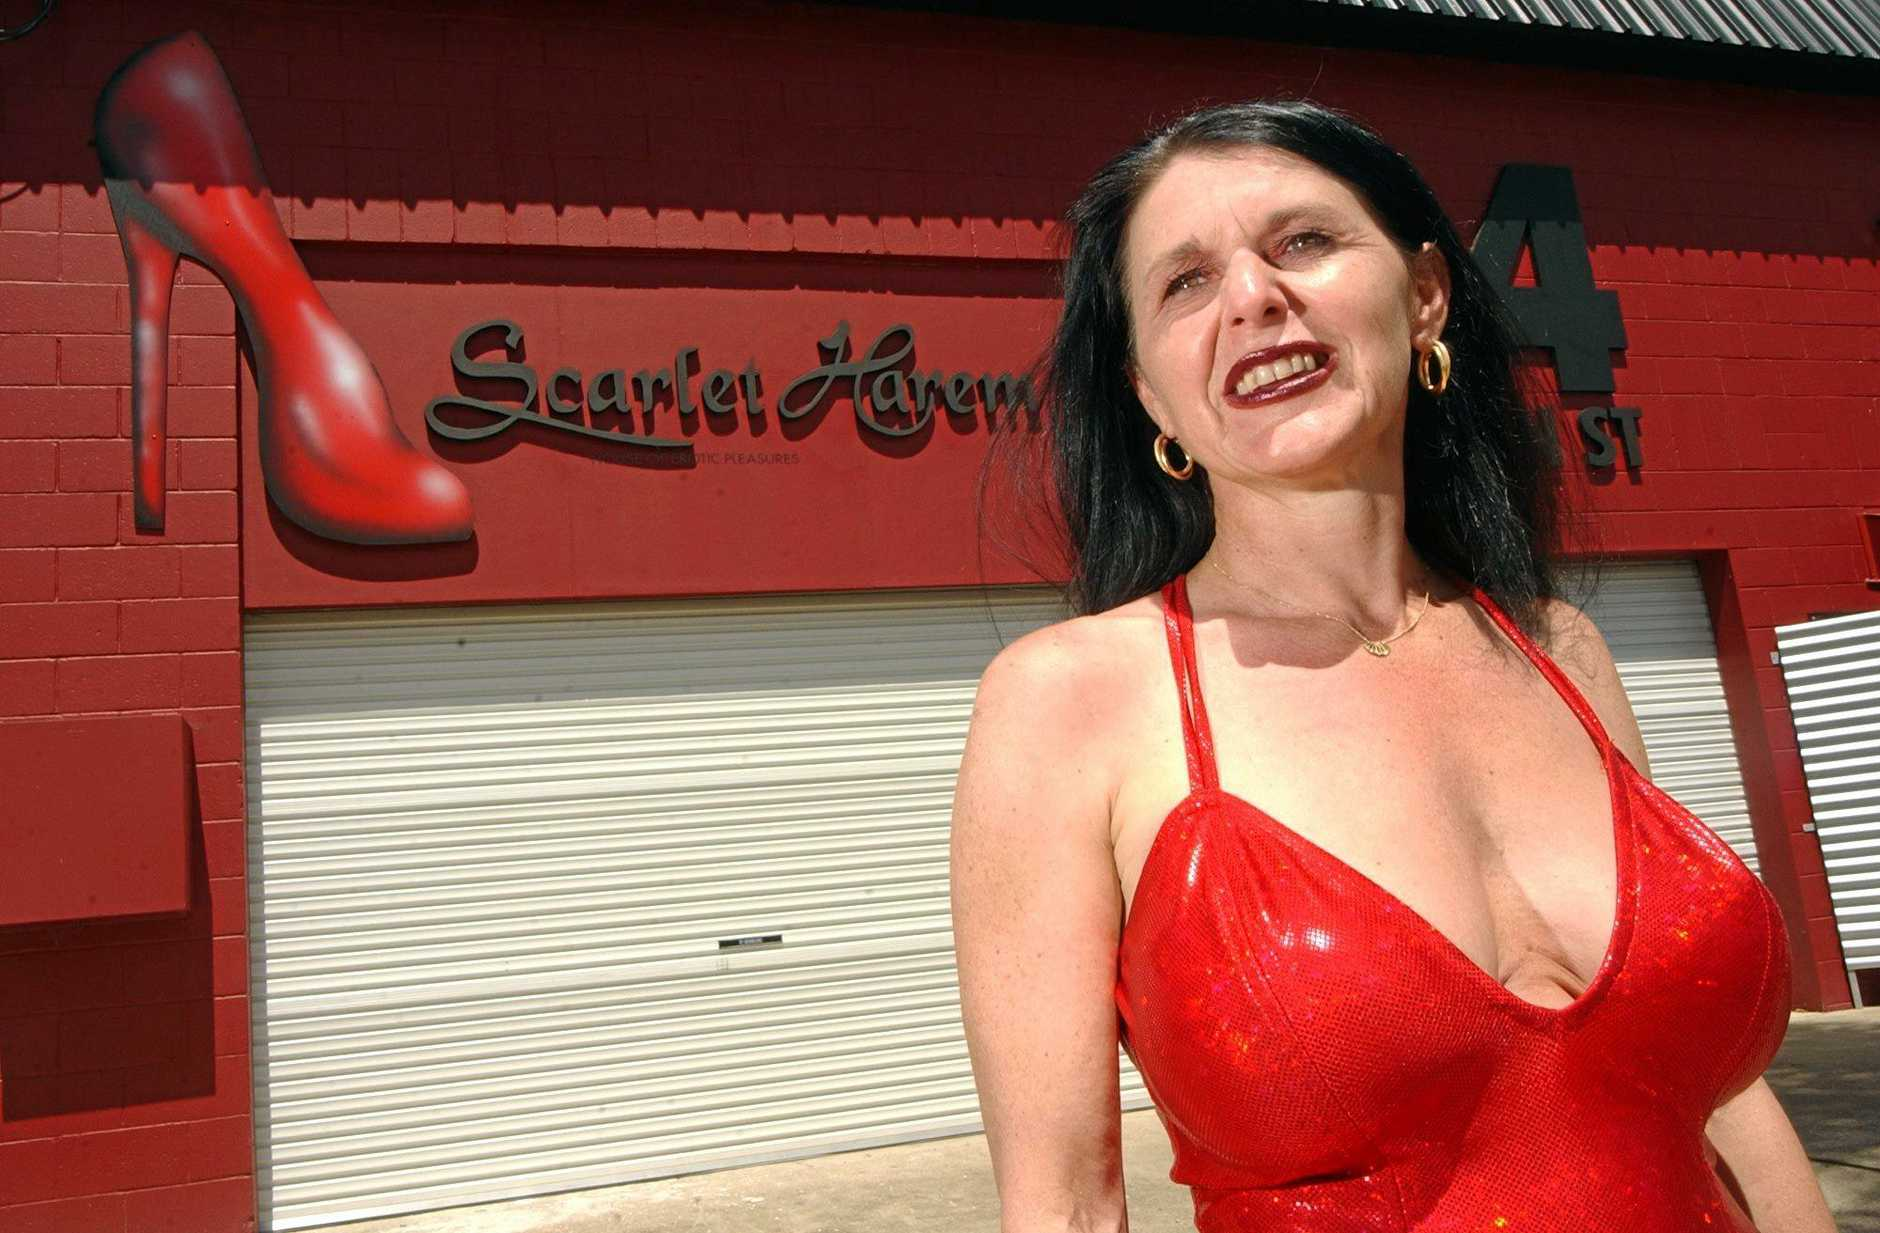 Paris Satine - licensee of the Scarlet Harem, renamed after a legal challenge by Moulin Rouge in France 03/10/03.Photo Chris McCormack / Sunshine Coast Daily